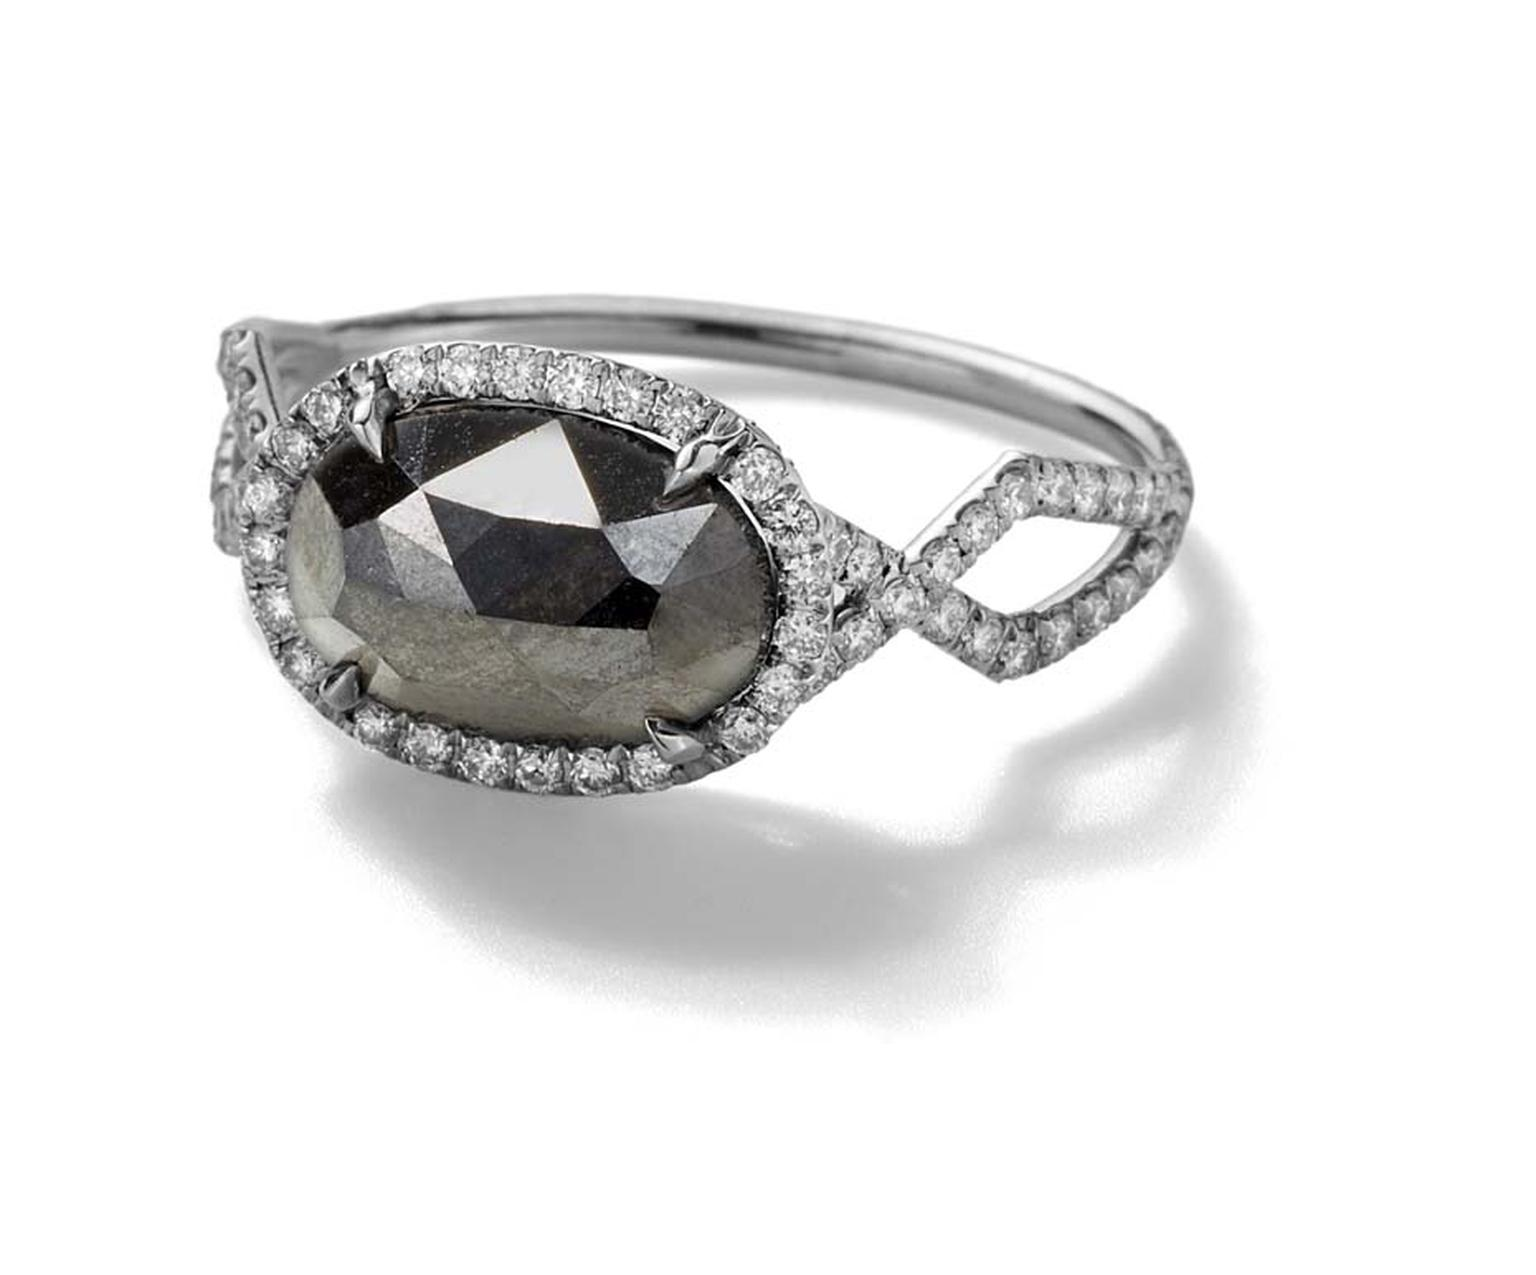 Monique Péan Mineraux engagement ring in recycled platinum, set with a black oval diamond and diamond pavé ($16,160)